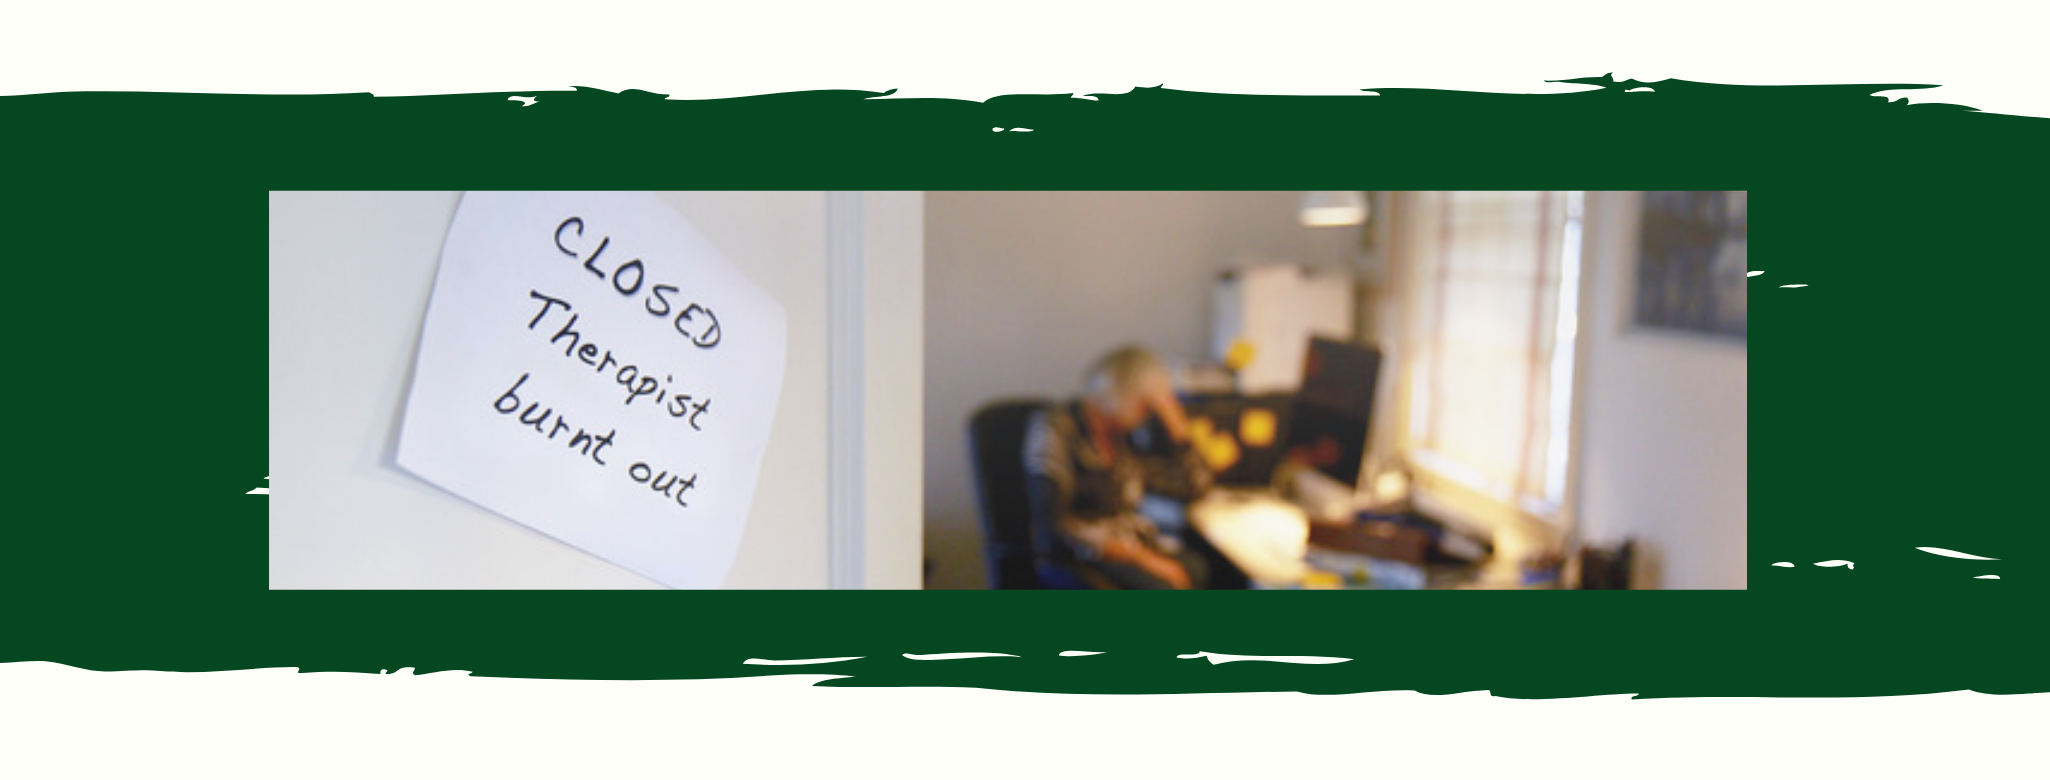 Image of a therapist at her desk next to a post it on a door that says Closed Therapist burnt out. Prevent therapist burnout and get online therapy for therapists™ with online therapist Melissa Russiano